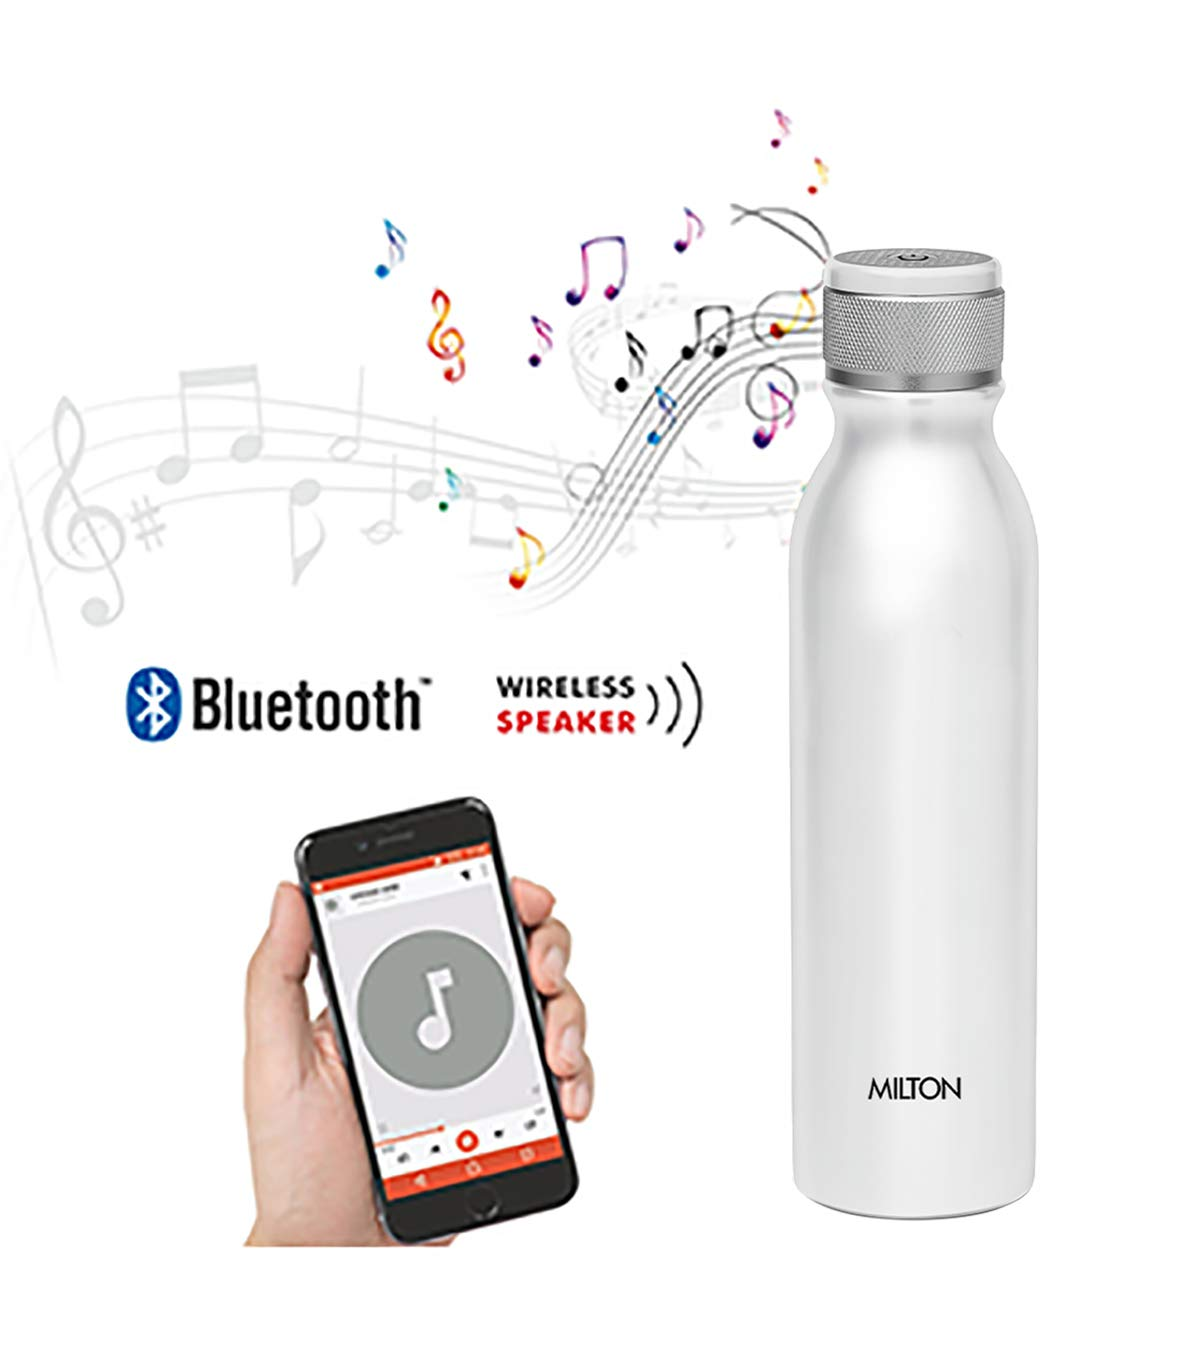 Milton Rhythm 900 Stainless Steel Bottle with Wireless Bluetooth Speaker, Silver 900 Bottle (Pack of 1)